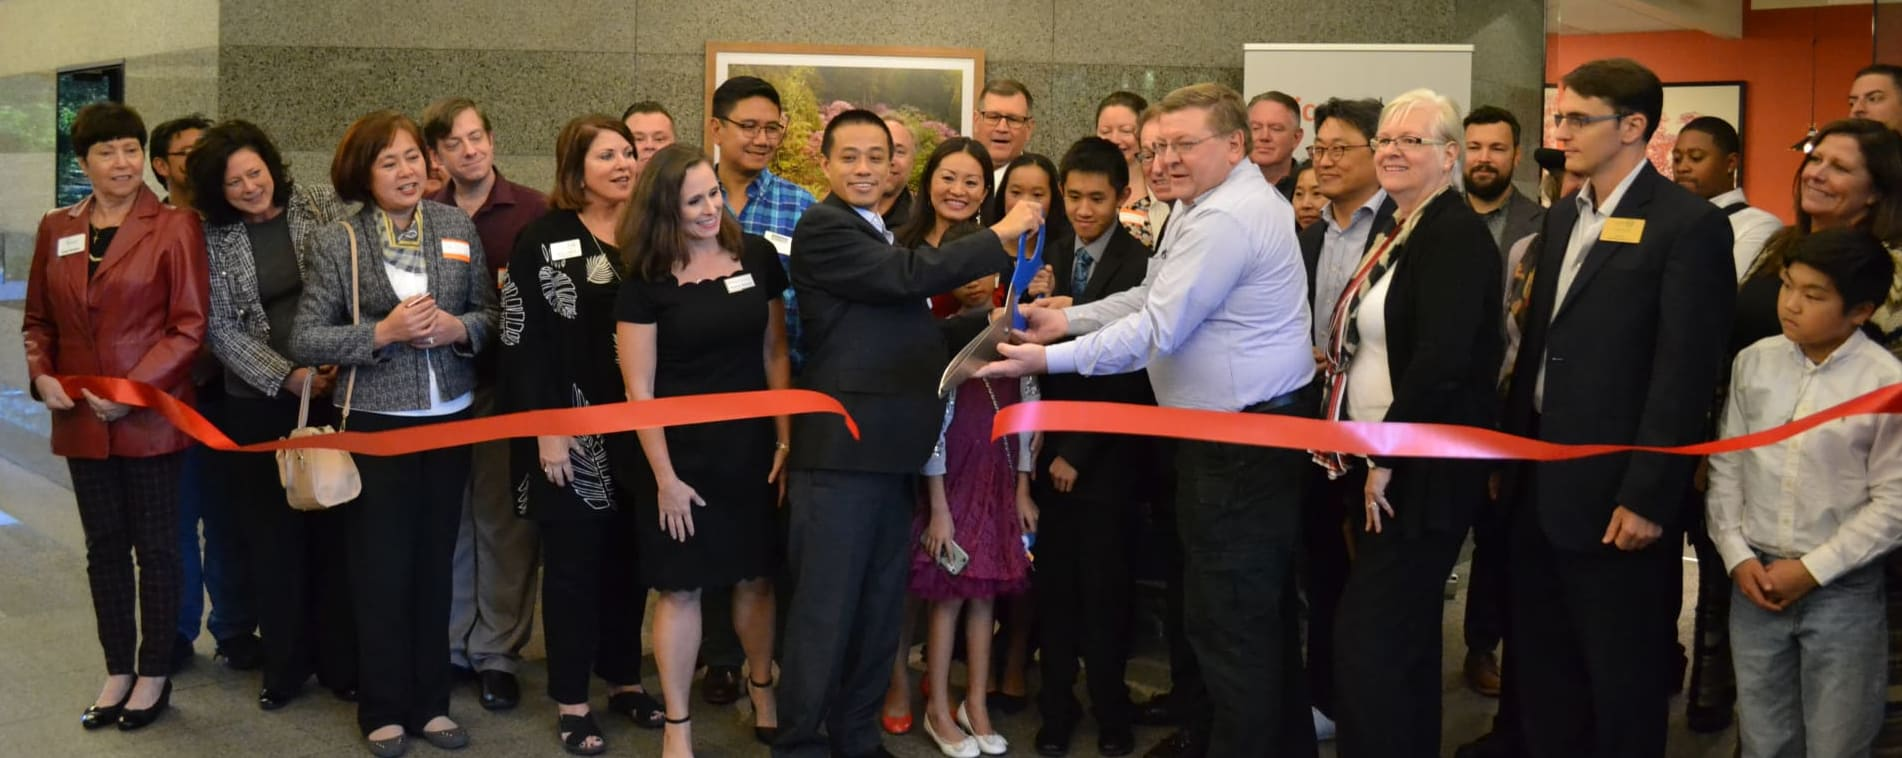 Ribbon-Cutting-Office-Evolution-w1902.jpg